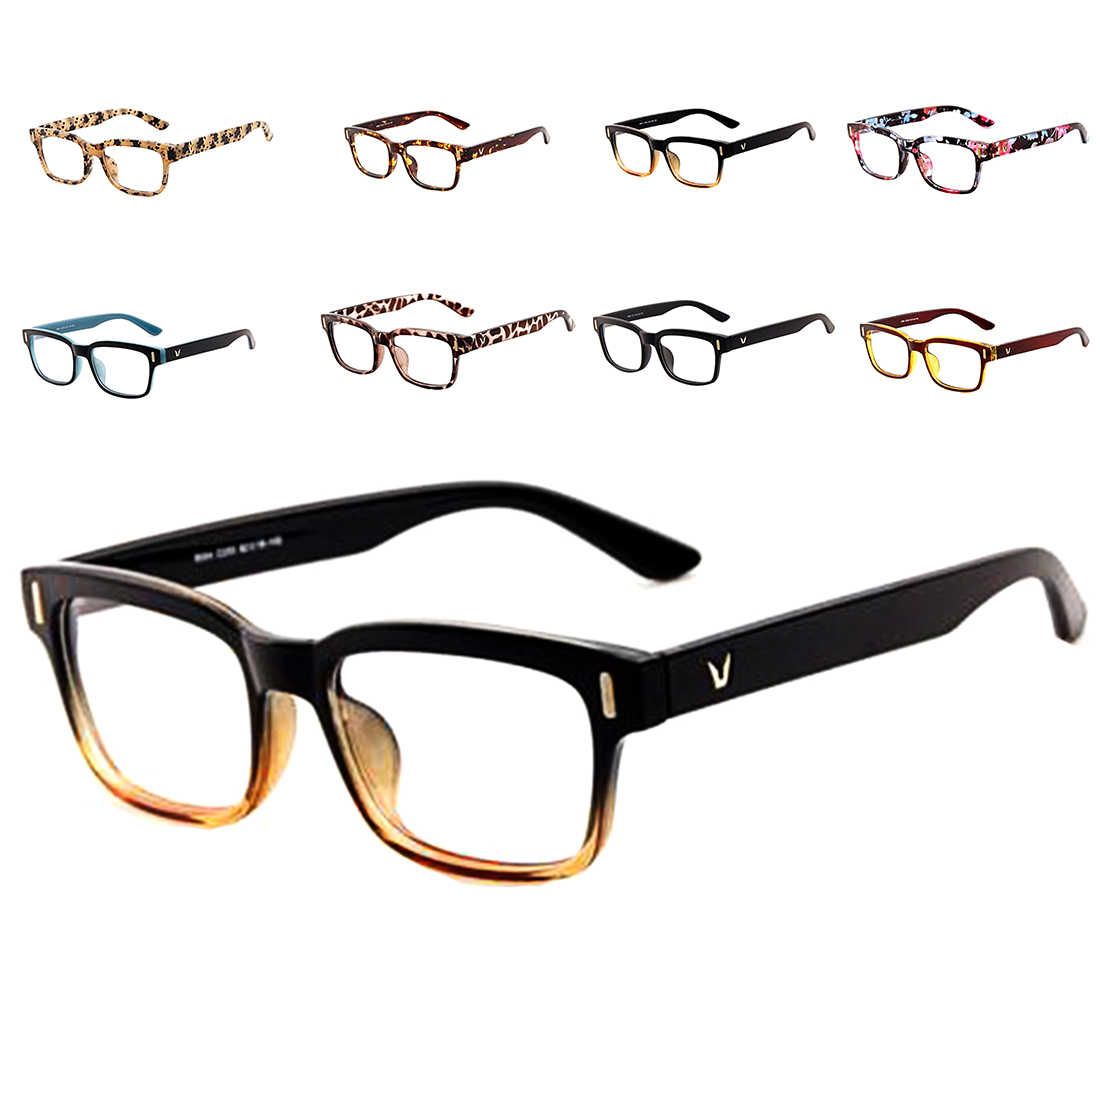 New 2016 Fashion V-Shaped Box Eye Glasses Frames Brand For Men New Women Computer Frames Eyewear Vintage Armacao Oculos De Grau